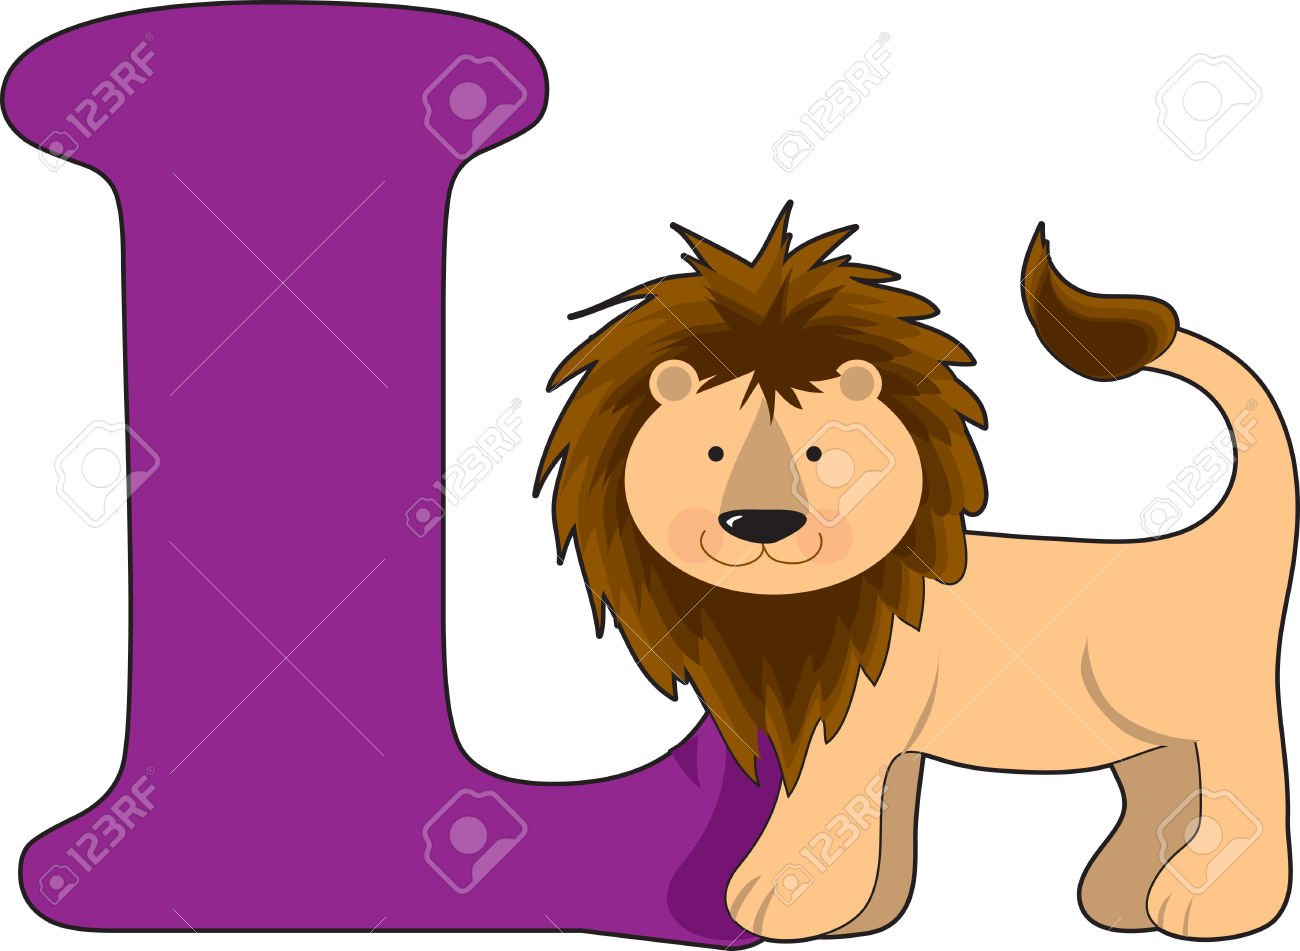 Letter royalty free cliparts. Animal clipart alphabet letters